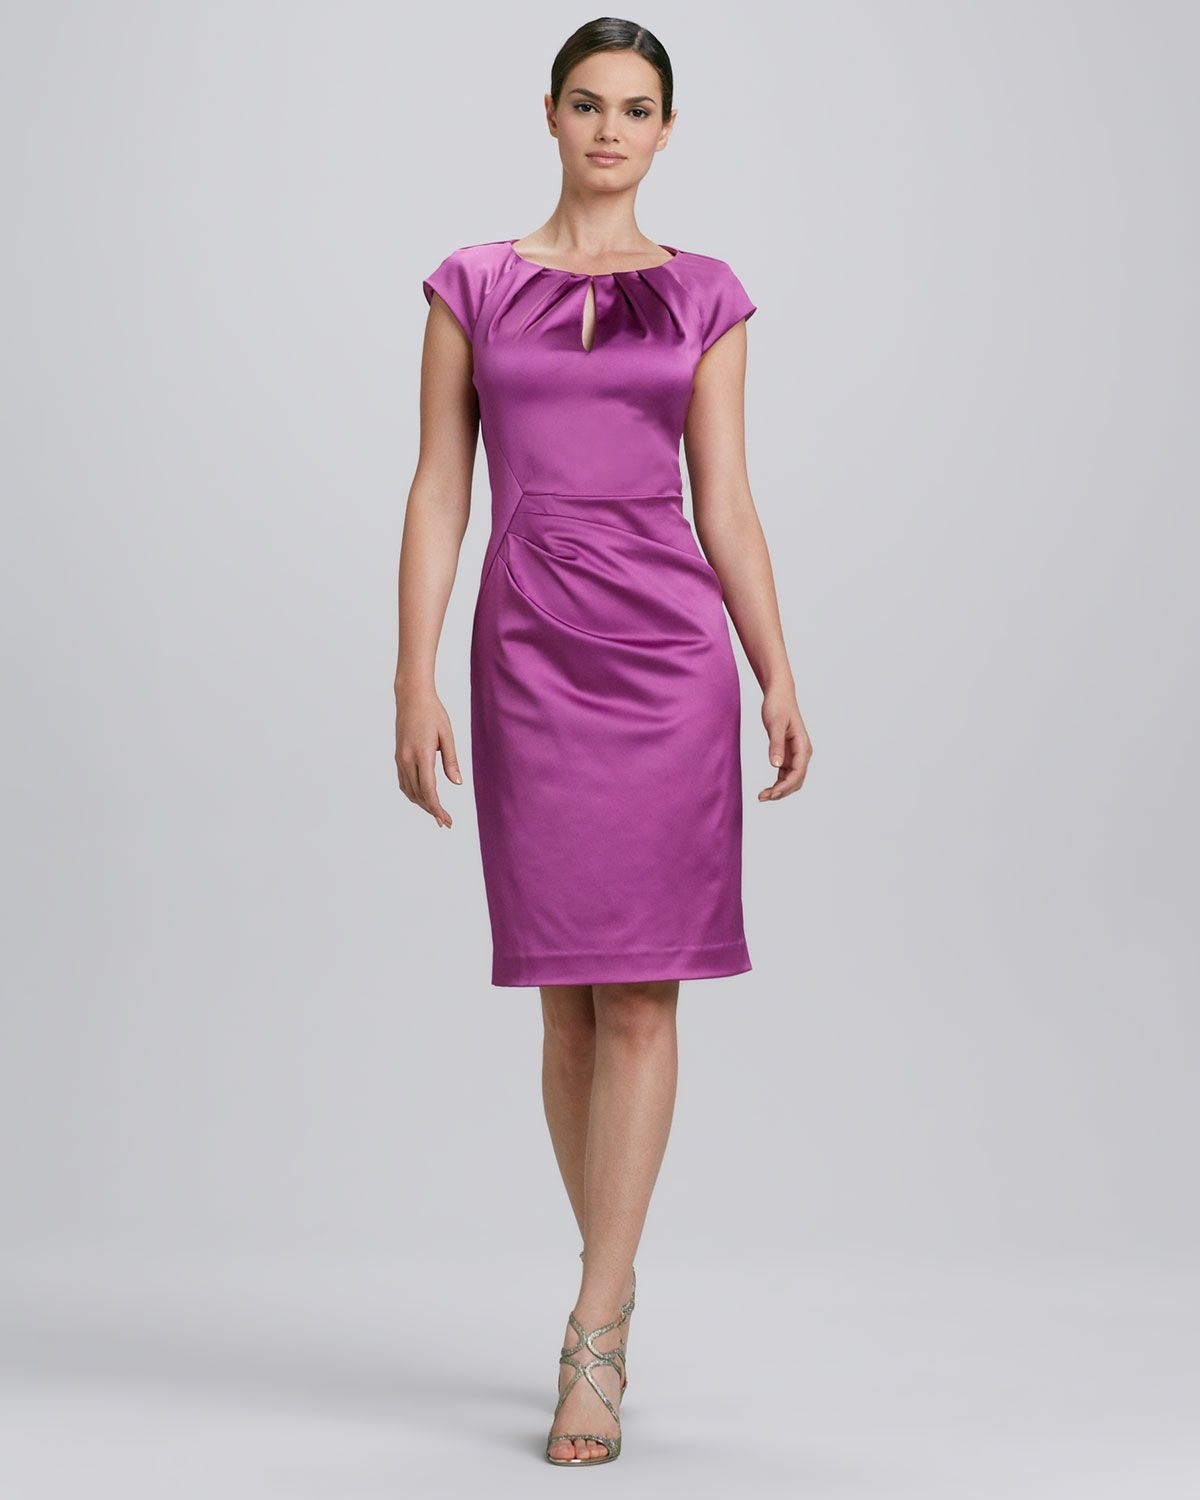 Kay Unger New York Jewel-Neck Ruched Cocktail Dress - Neiman Marcus ...